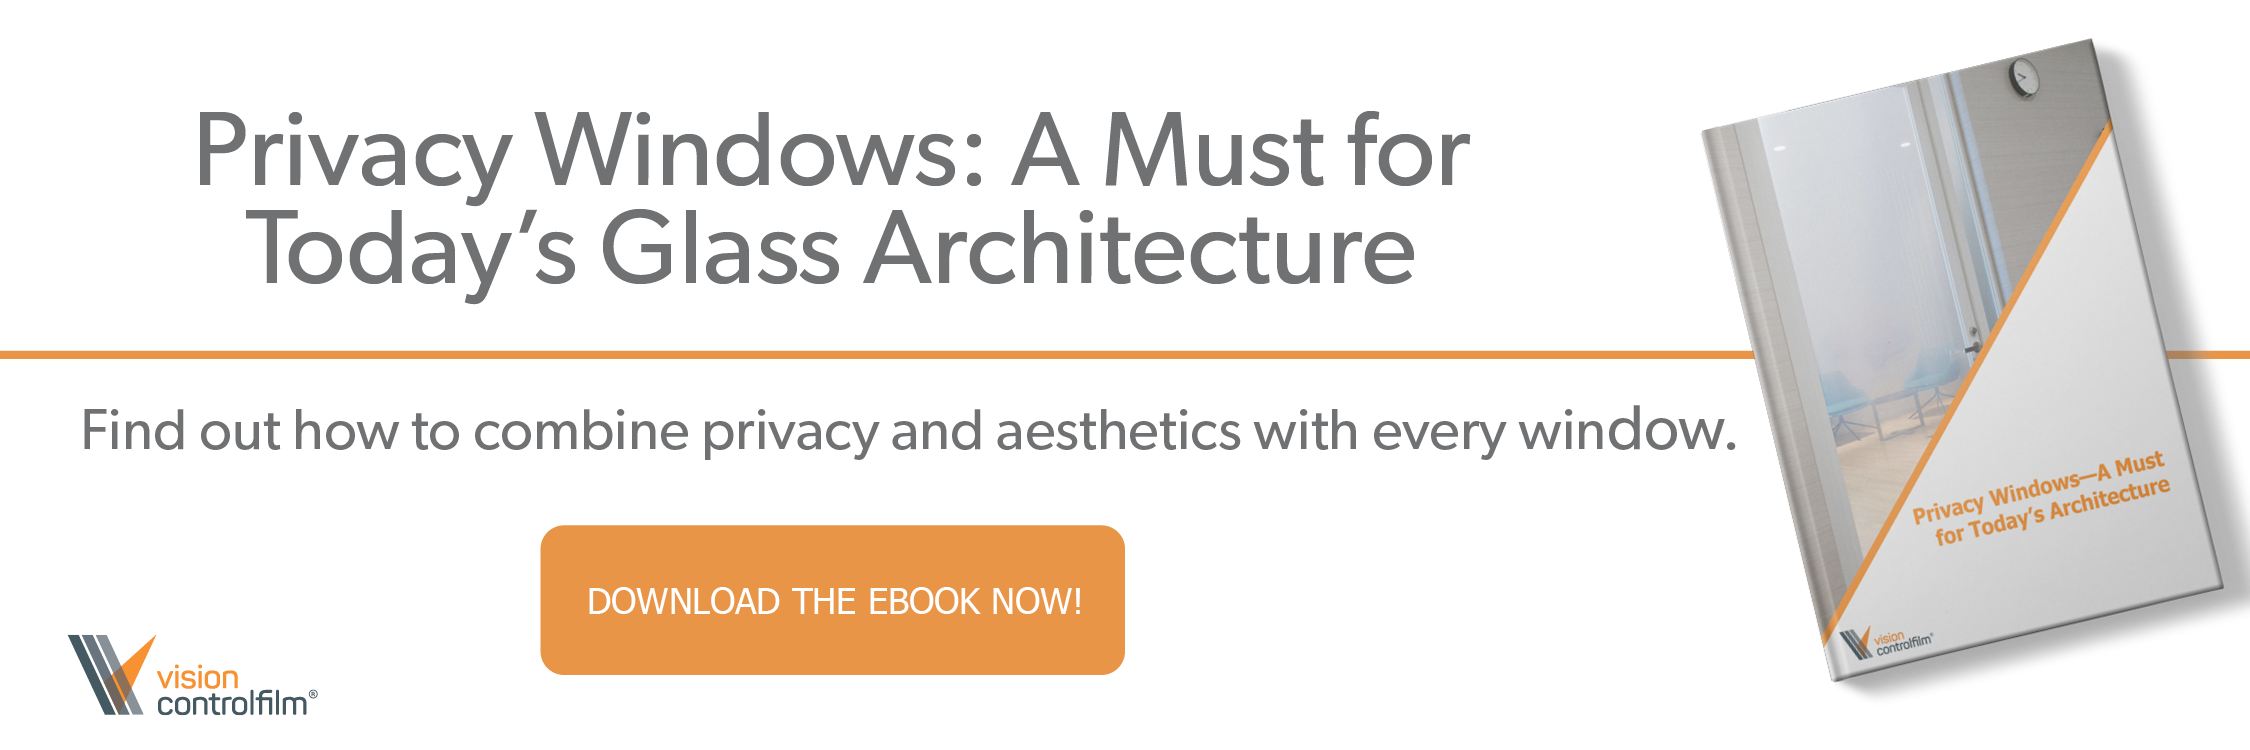 Privacy Windows